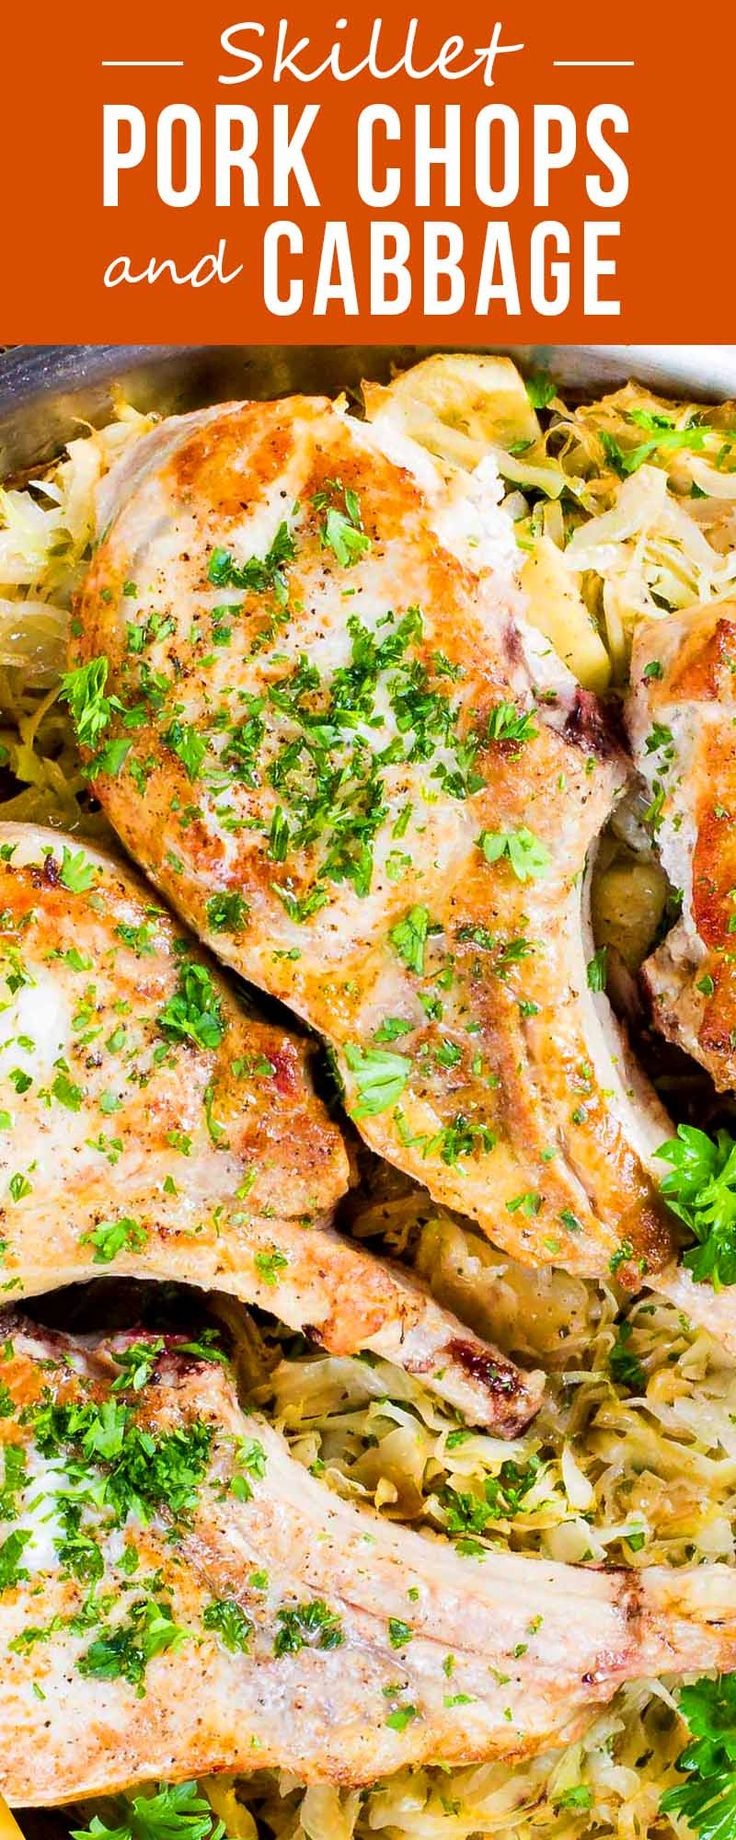 Pork chops cooked low and slow become so tender and juicy—and so do the cabbage and apples that cook with them. #porkchops #cabbage #Germanfood #skilletdinner